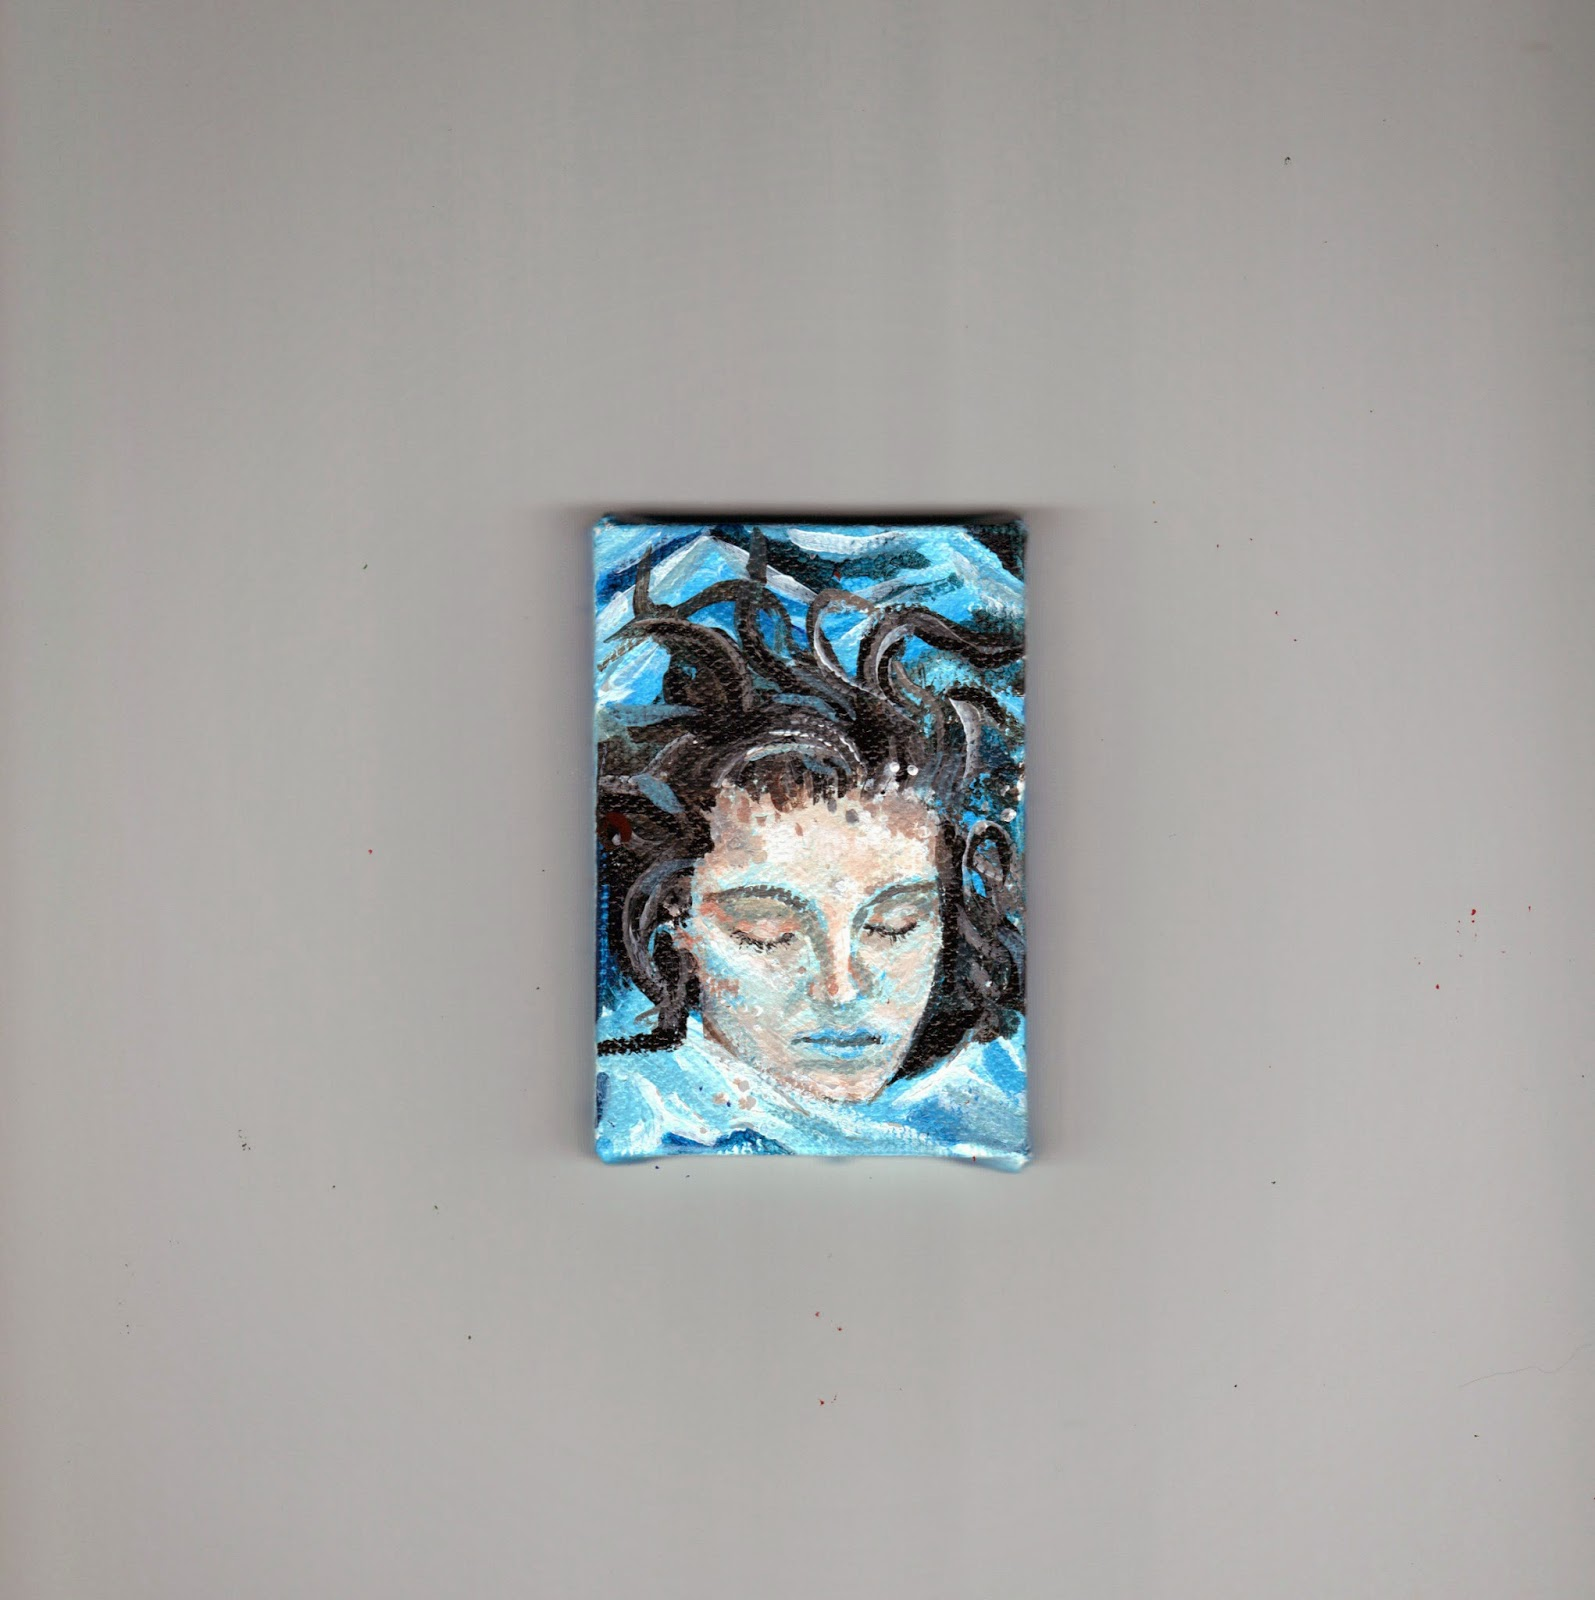 https://www.etsy.com/listing/171734177/miniature-painting-twin-peaks-laura?ref=shop_home_active_2